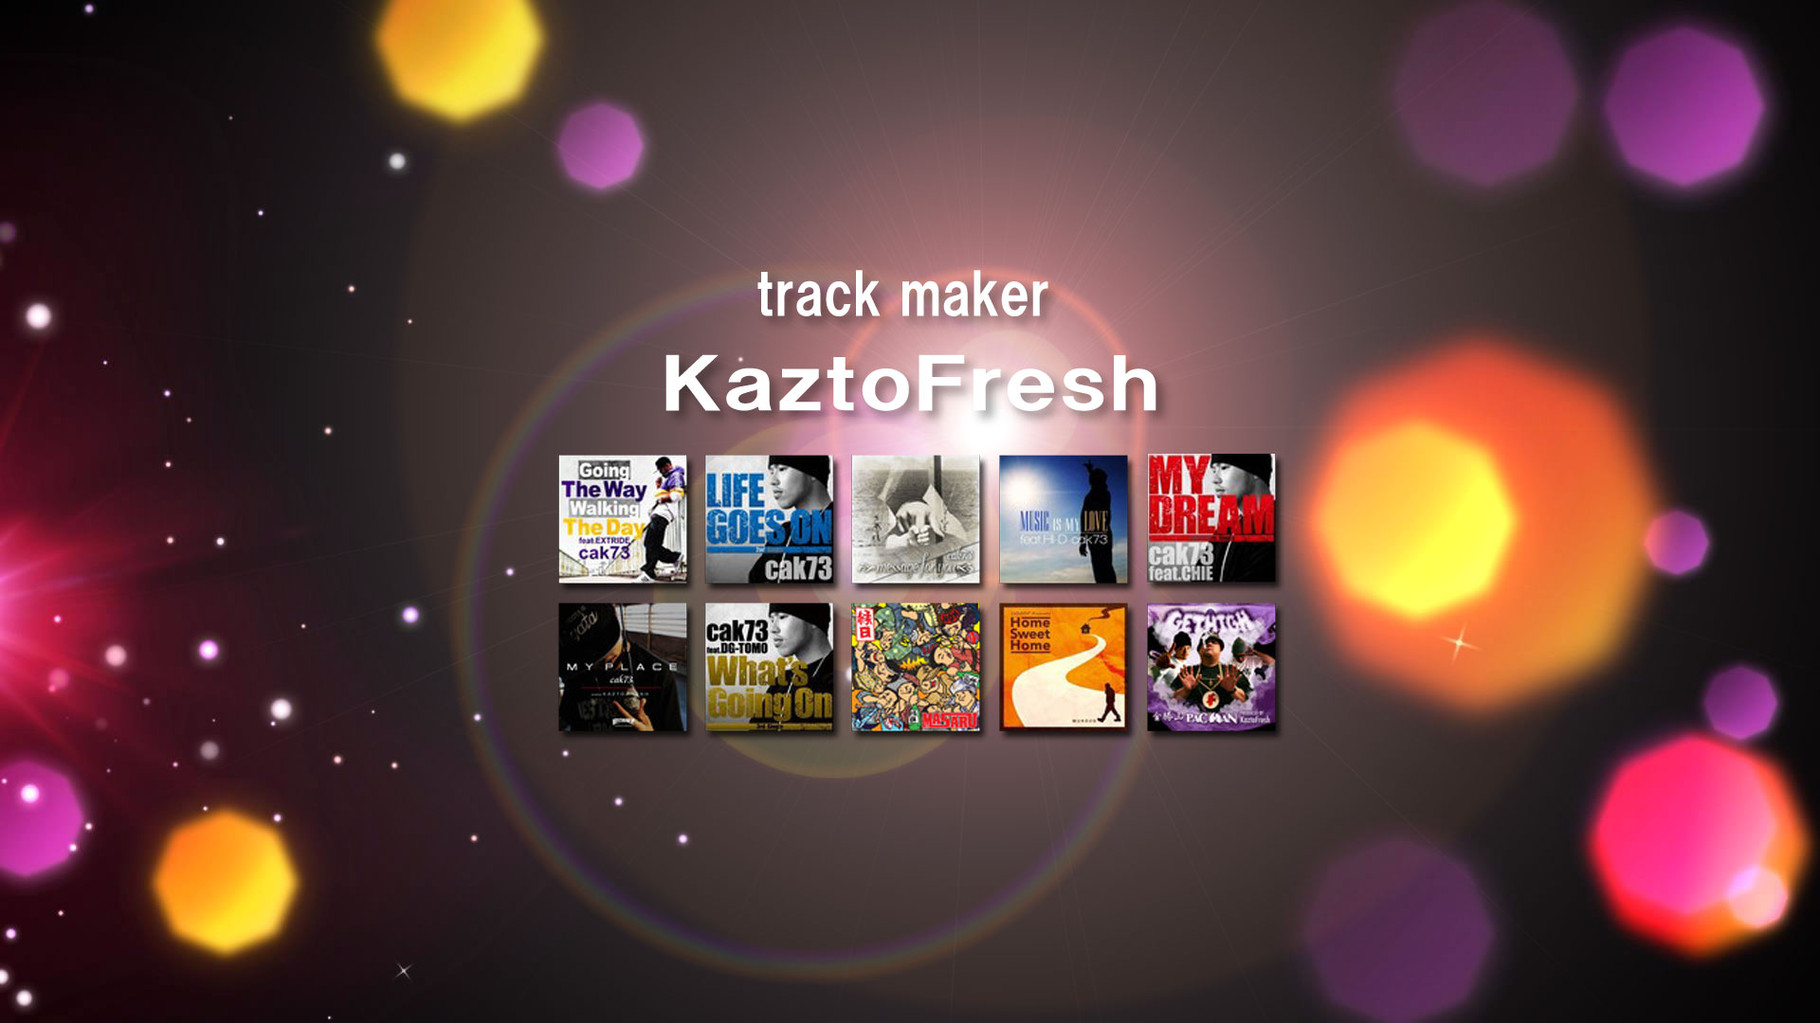 Track maker KaztoFresh